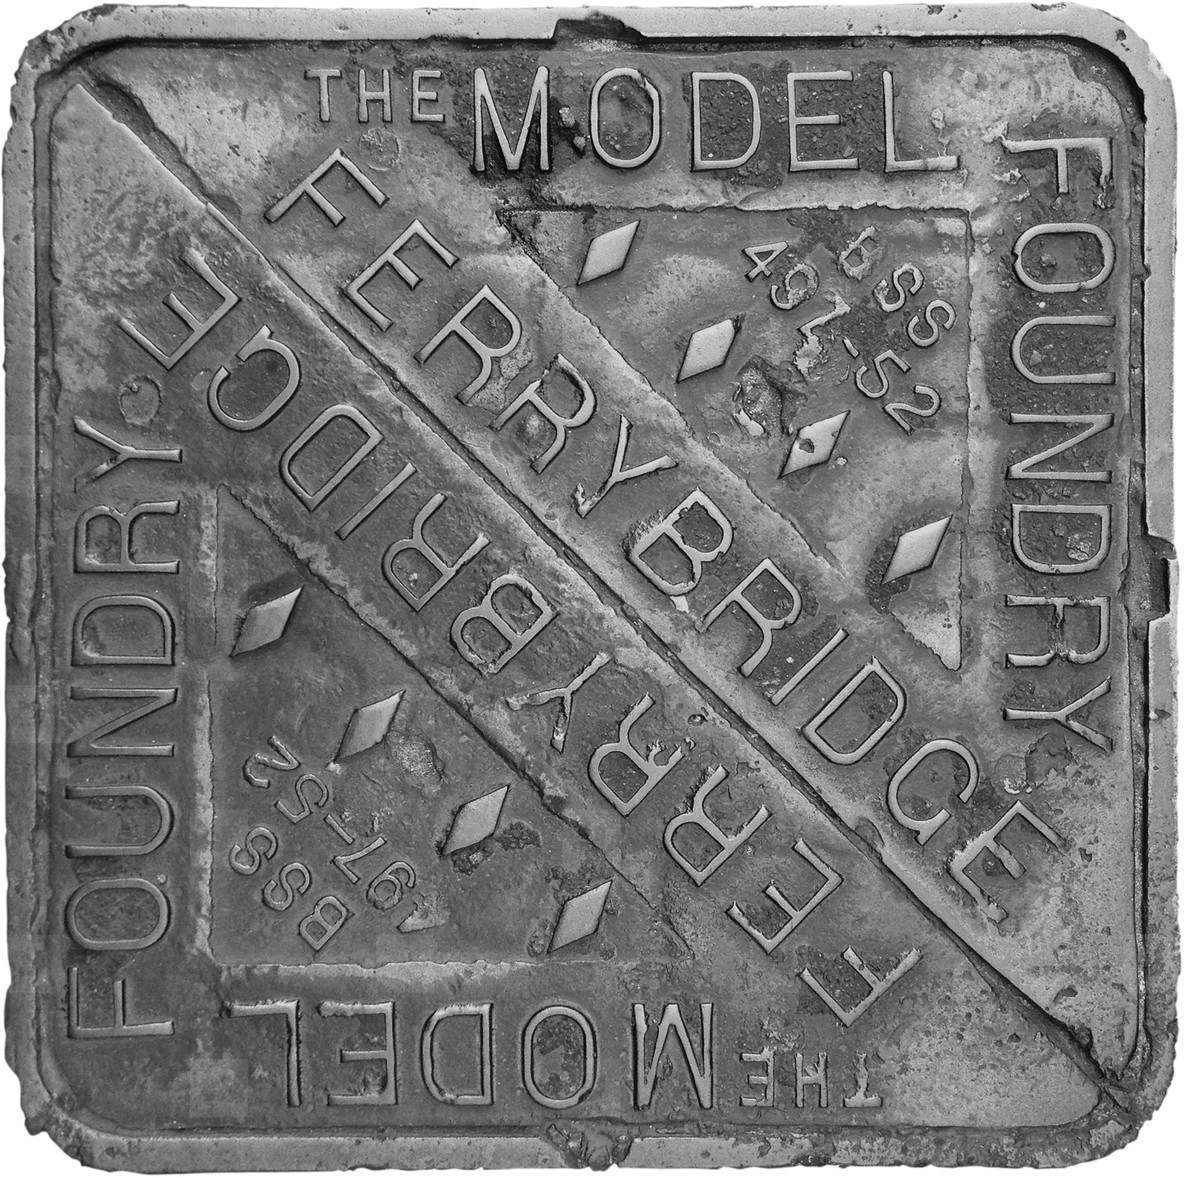 The Model Foundry